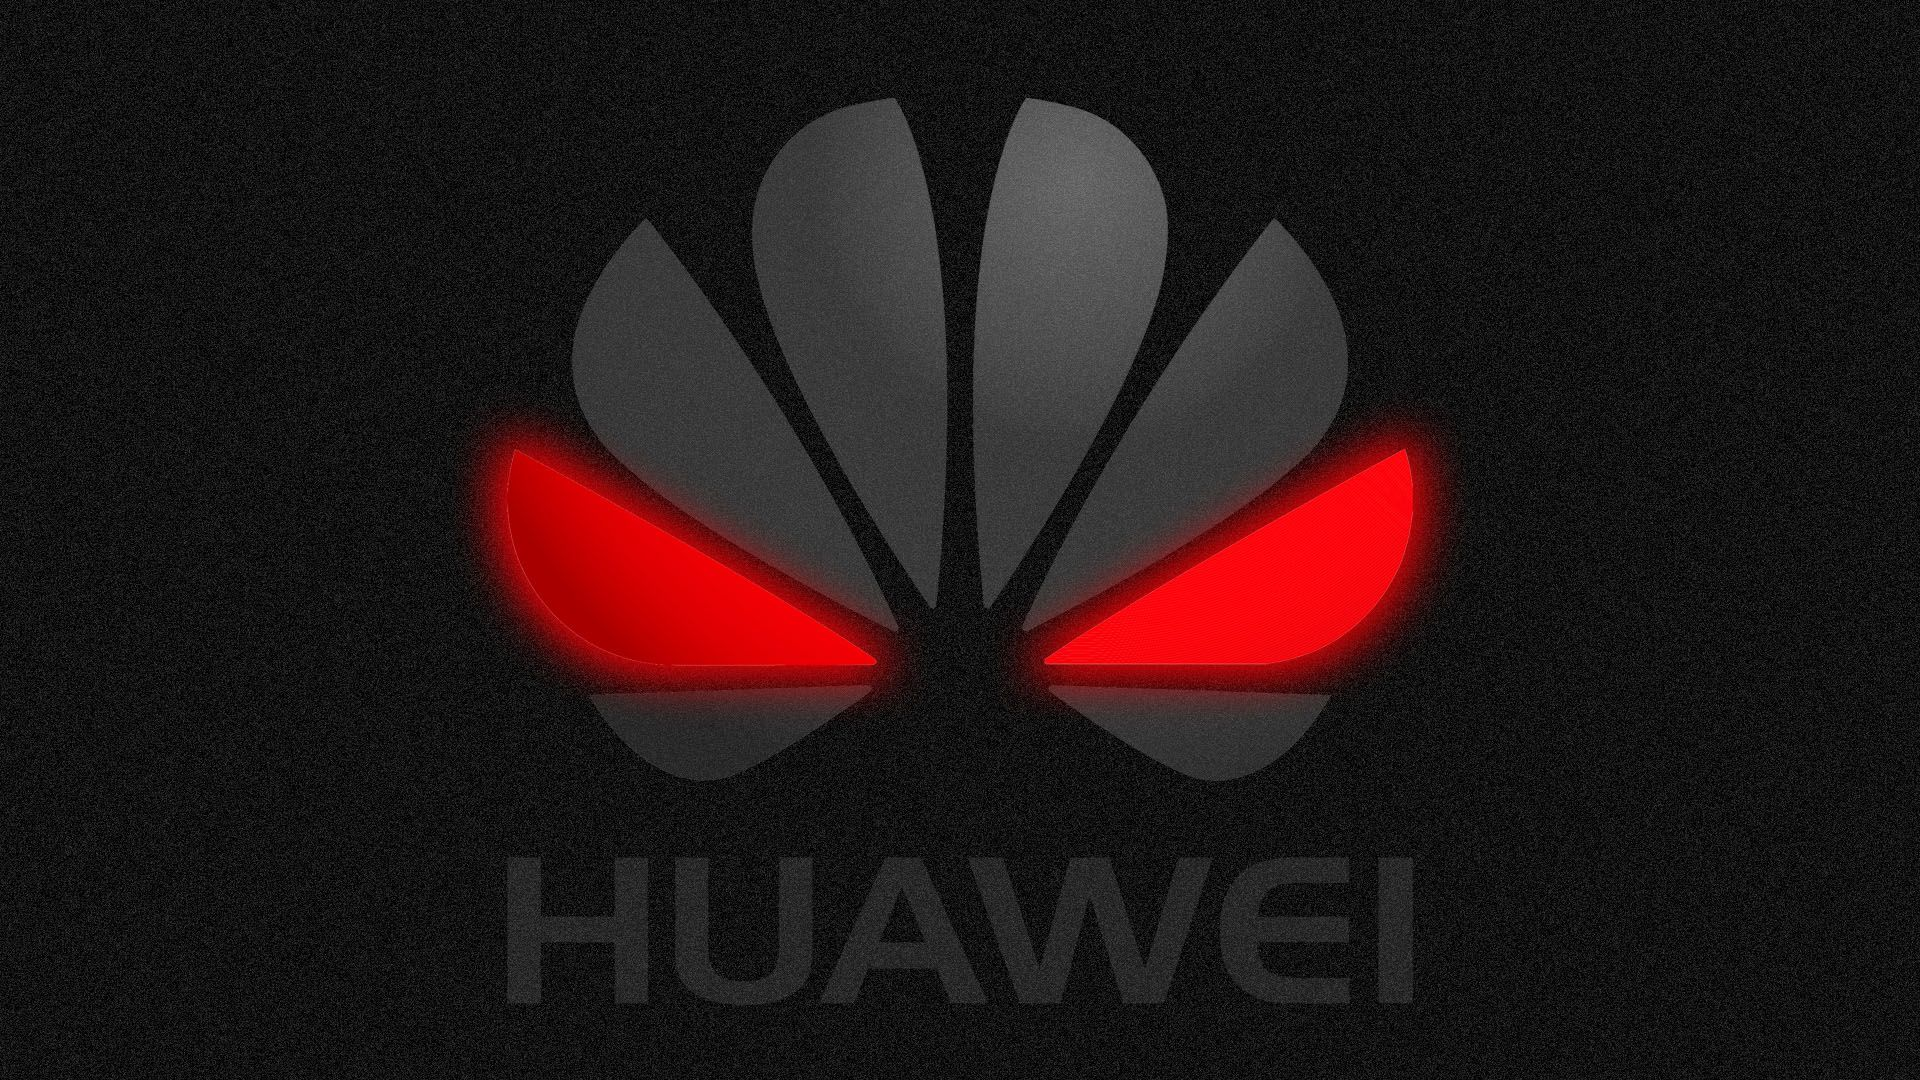 Huawei logo with red eyes